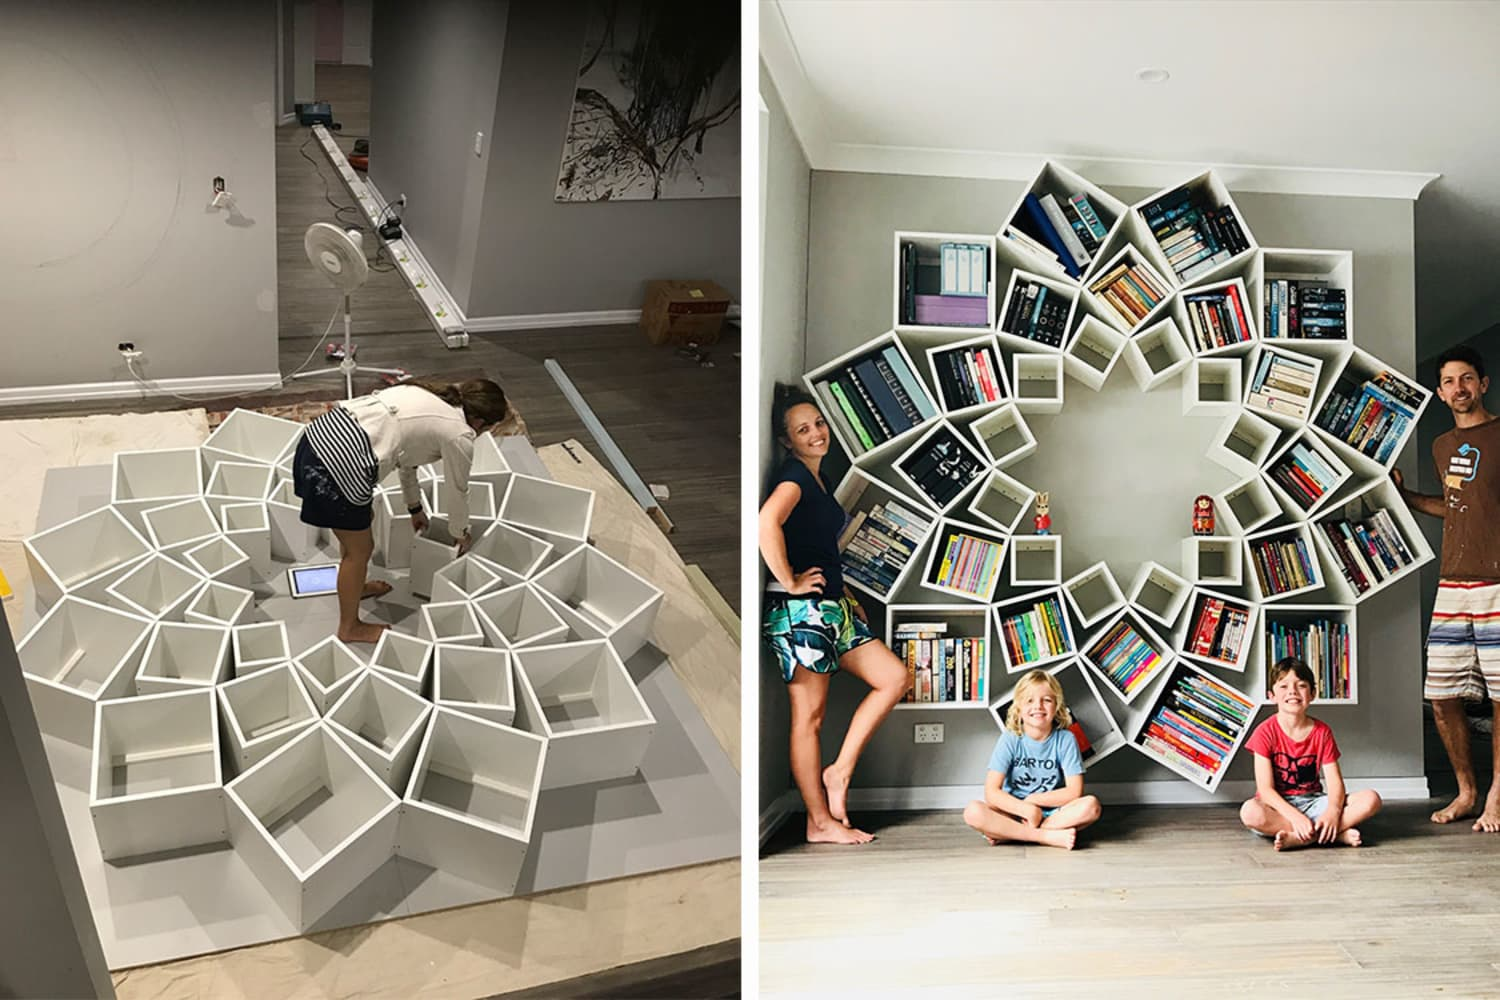 This Couple Built an Intricate Bookshelf Out of 36 Boxes, Proving Any DIY Project Is Possible